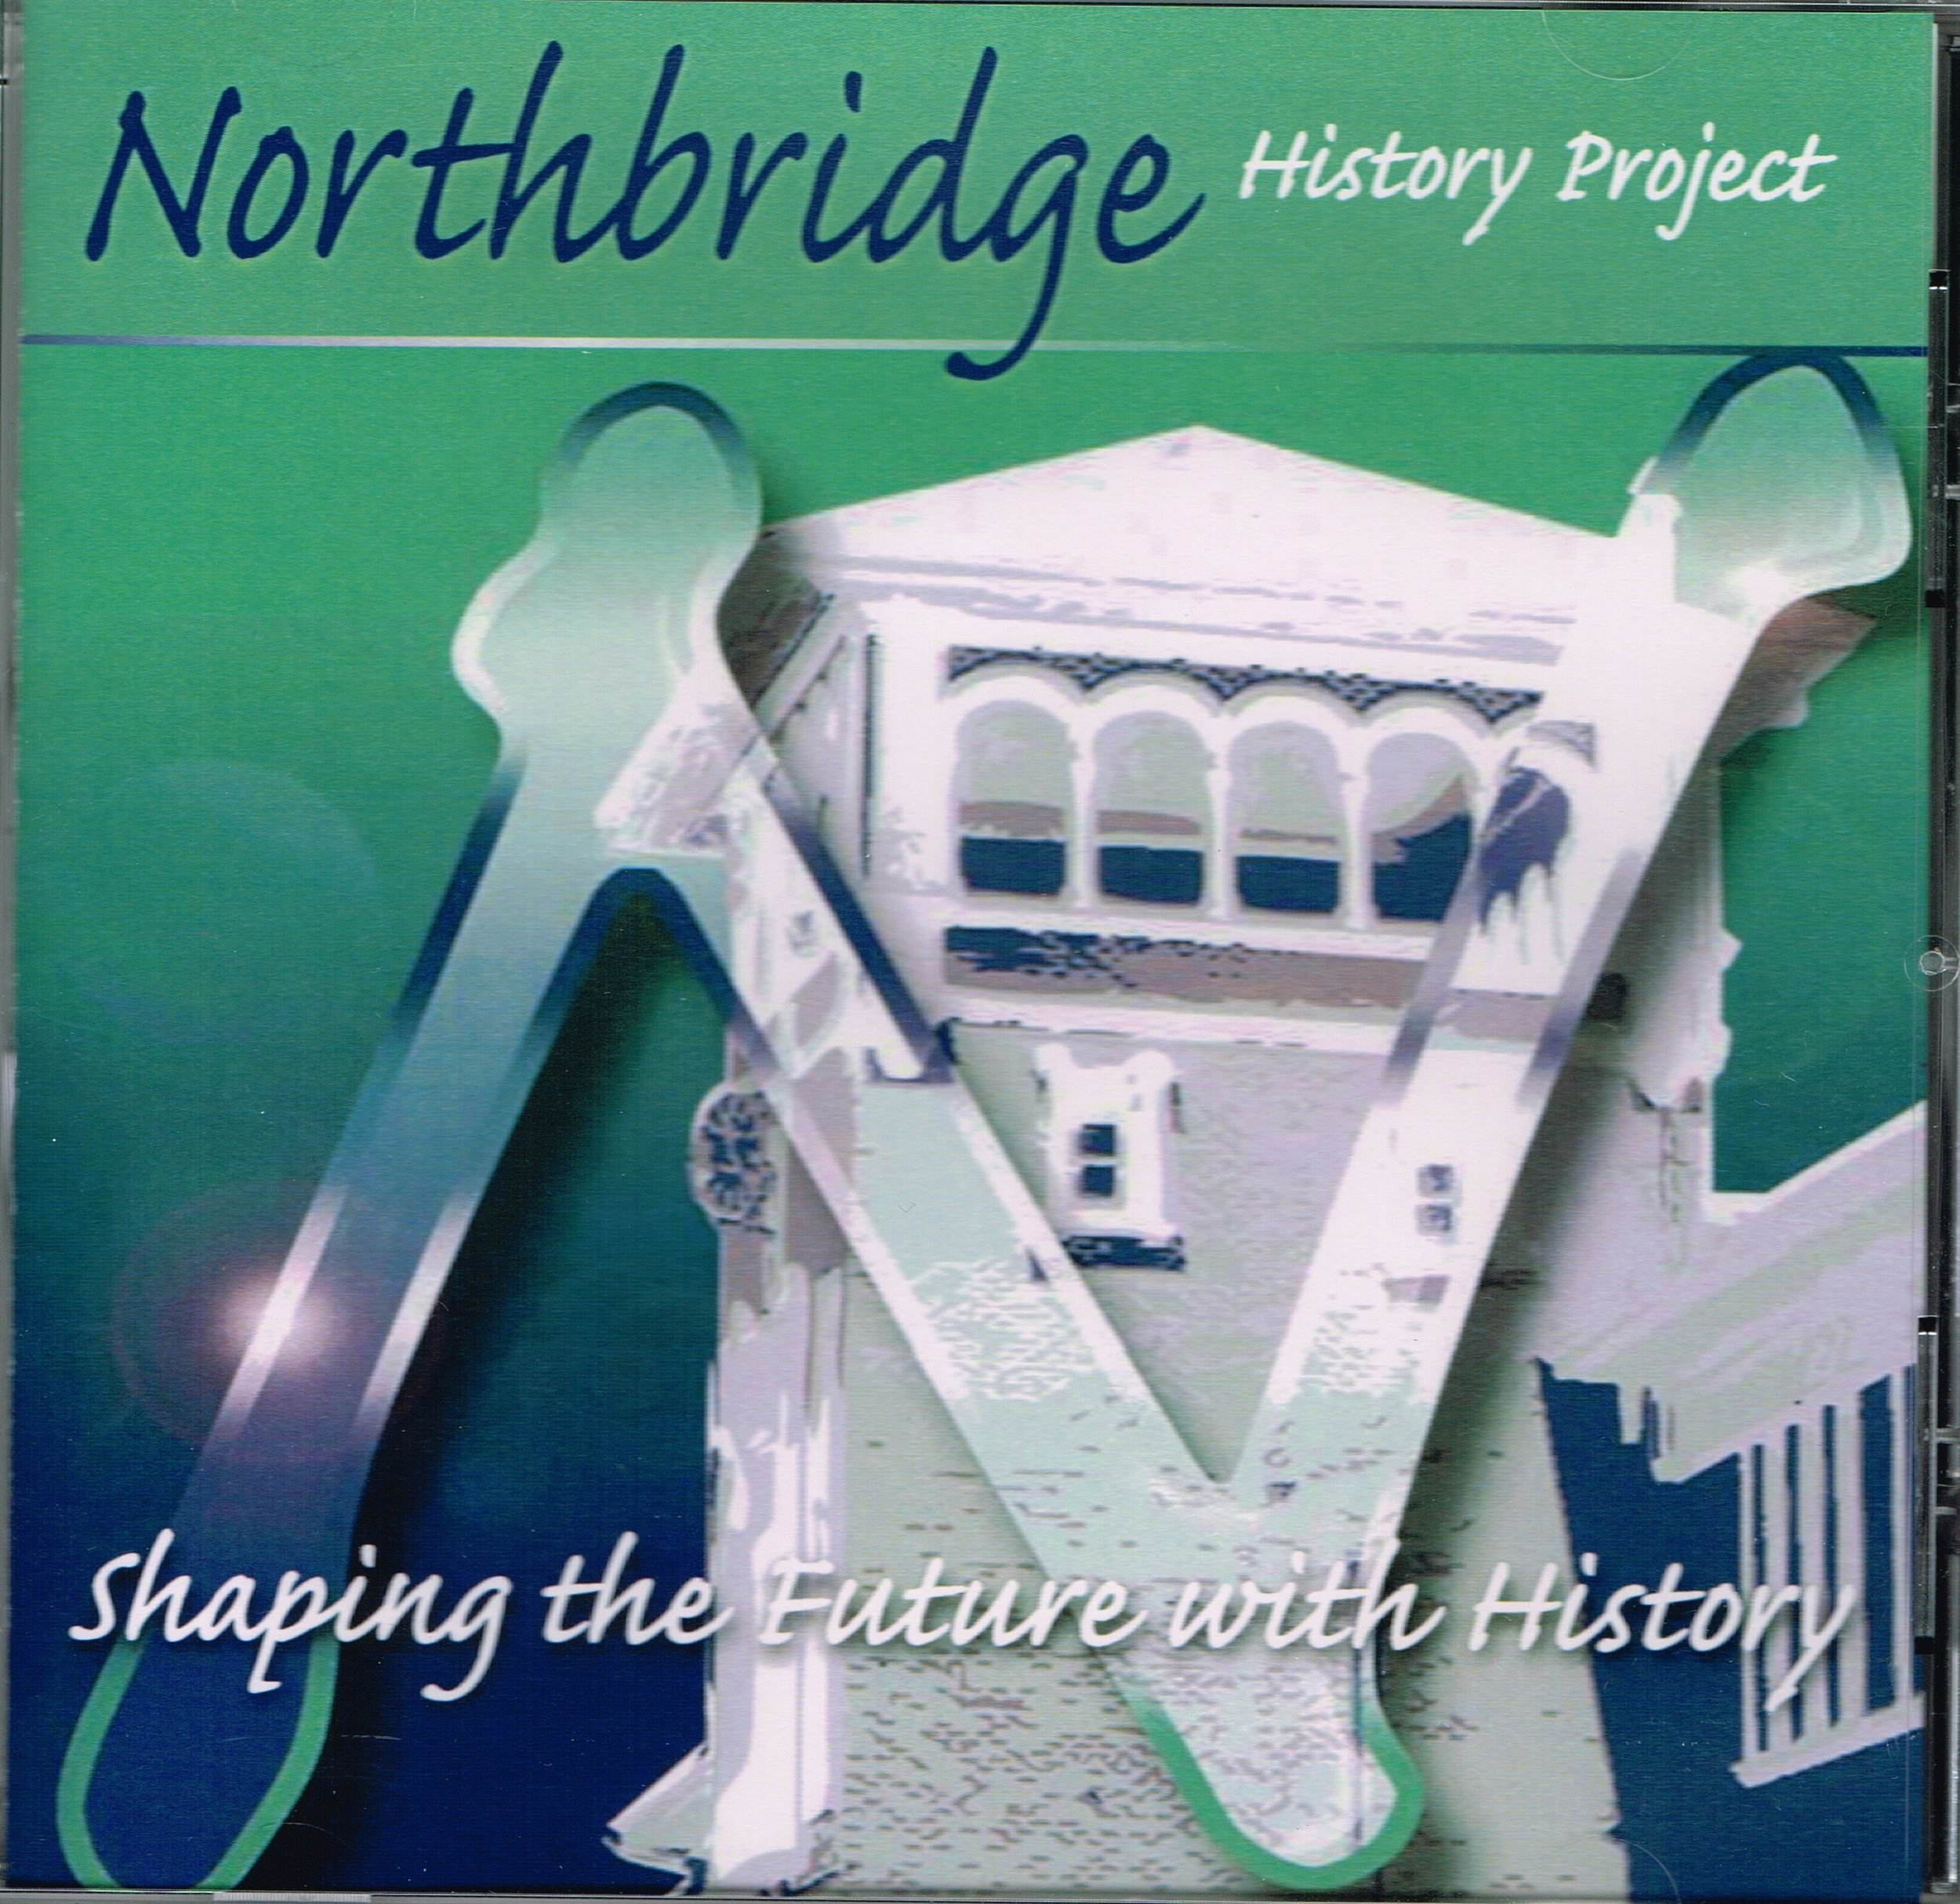 Northbridge History Project : Shaping the future with history (CD-ROM and report)  Dr Felicity Morel-EdnieBrown : City of Vincent